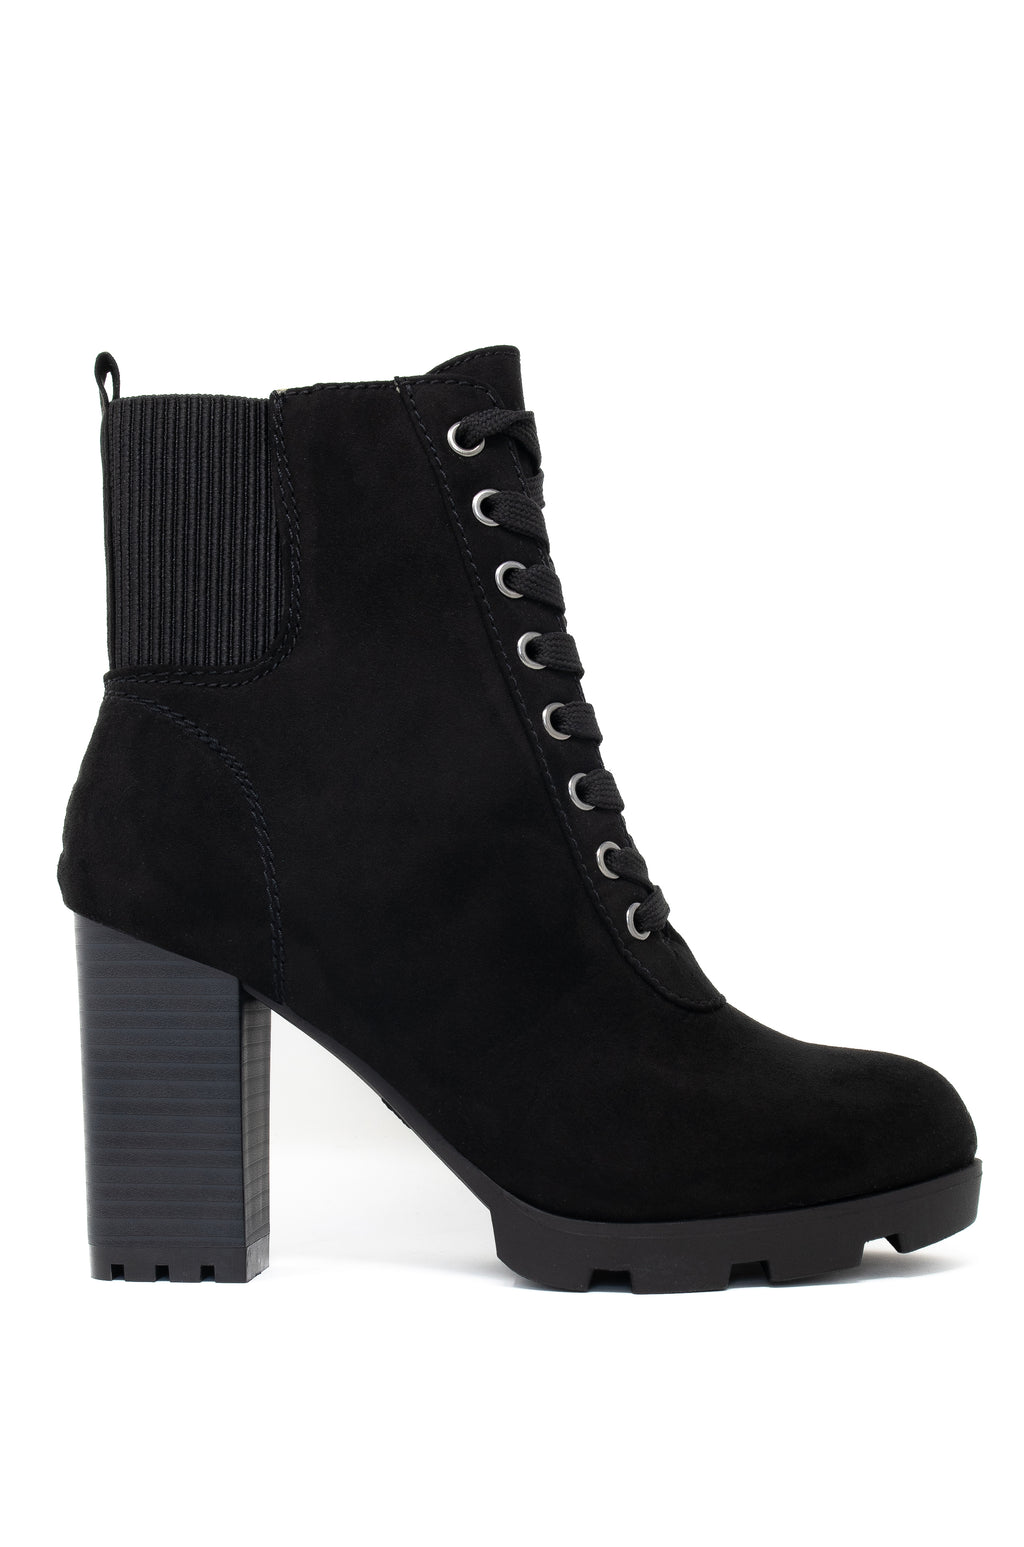 Breaking Rules - Black Booties